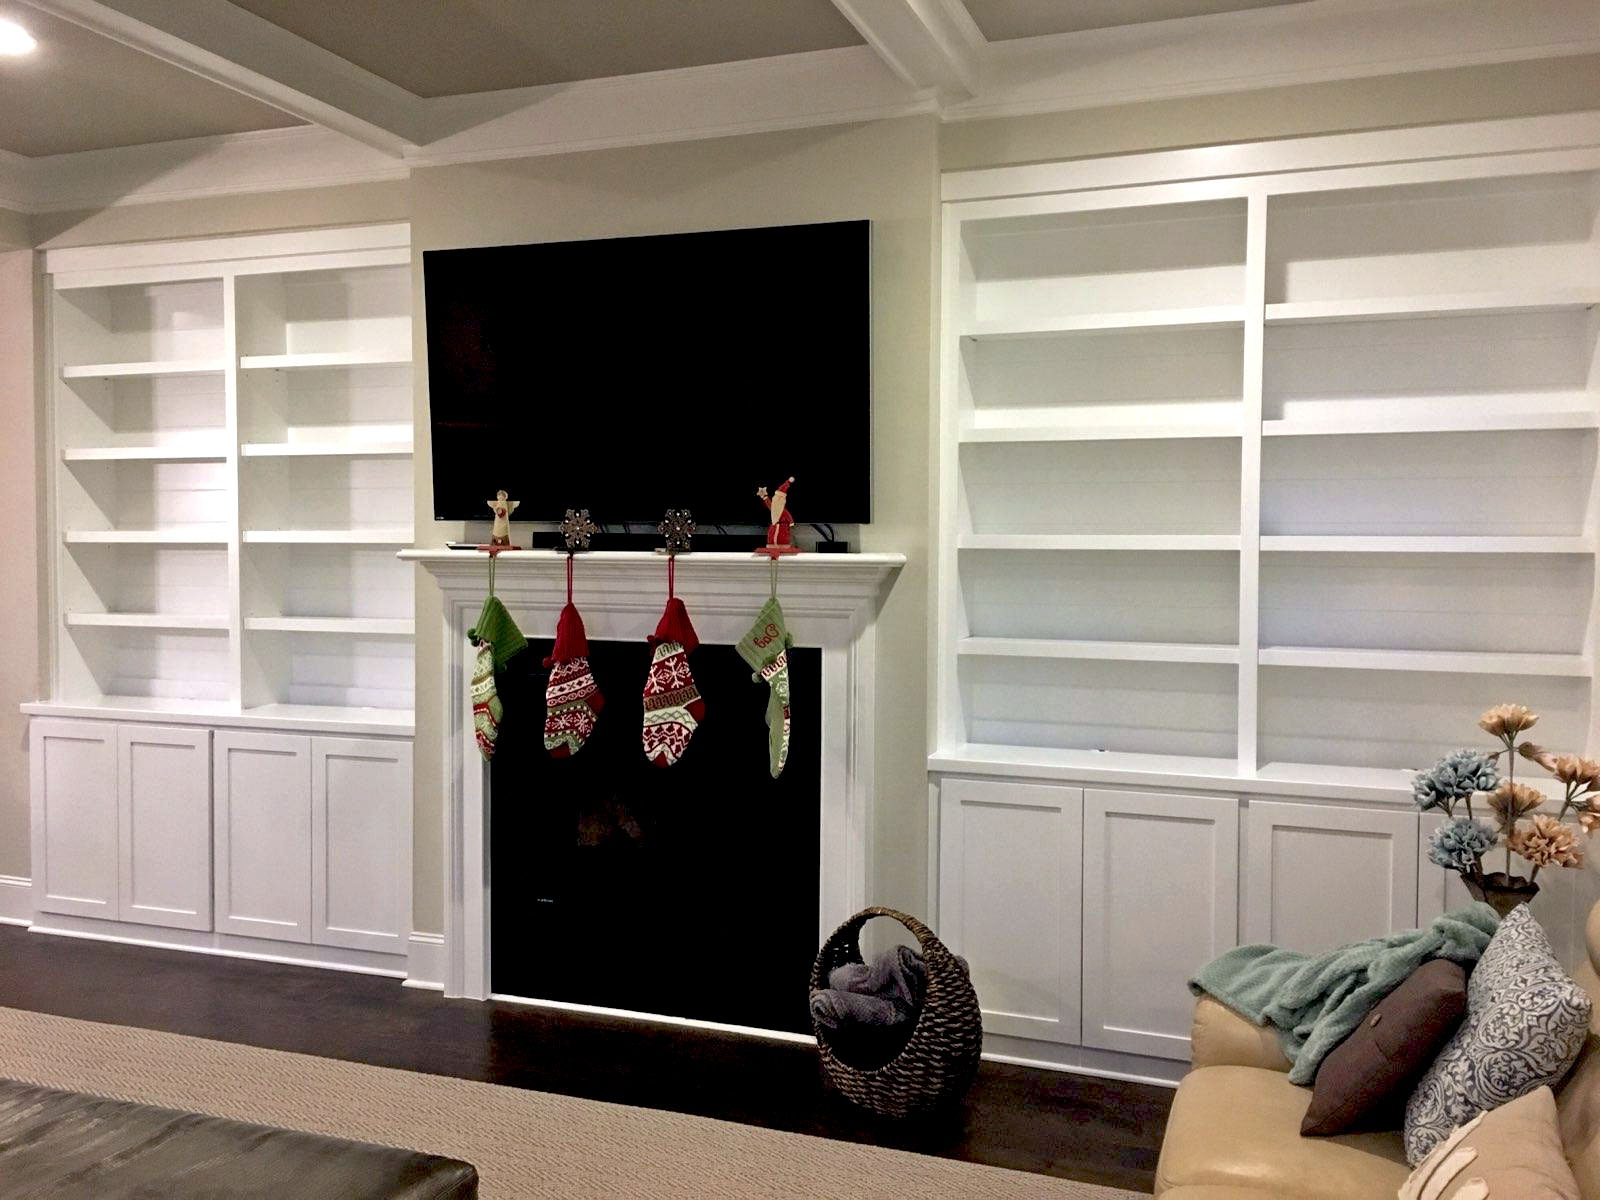 Fireplace Built-In with Adjustable Shelves, Shaker Doors, and 1-By Crown